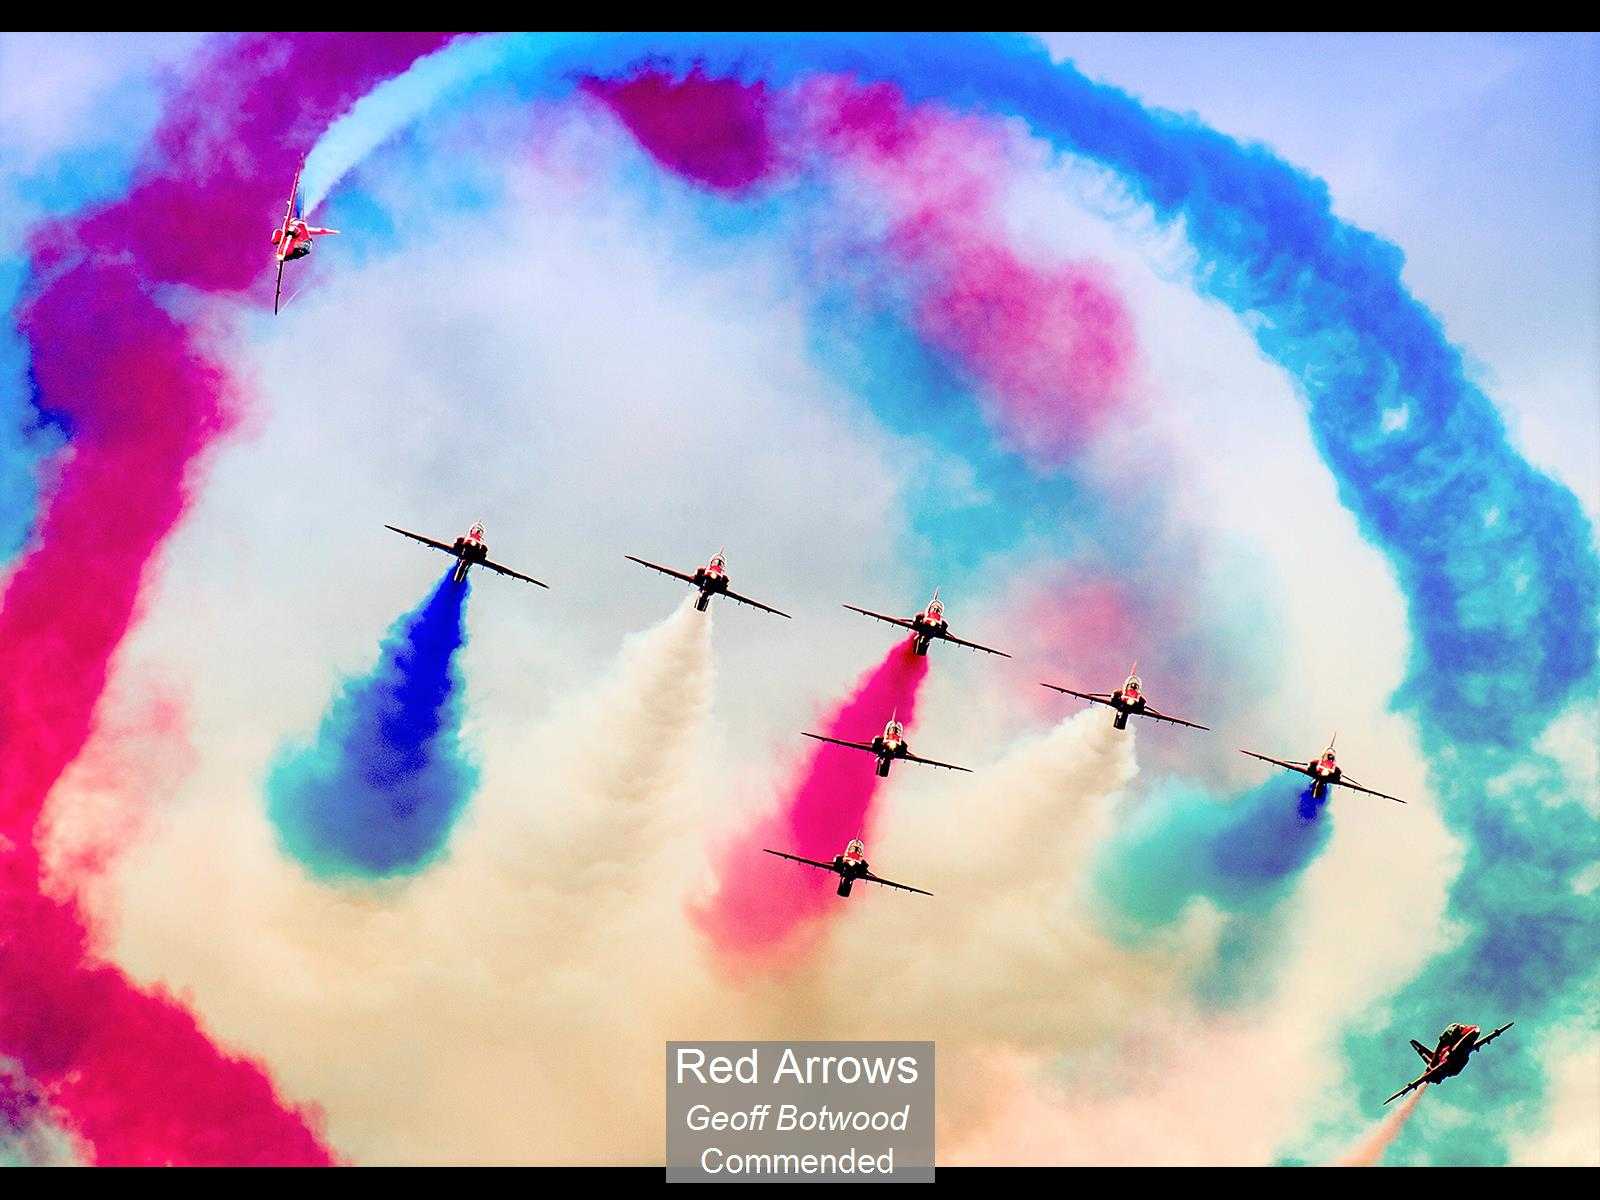 Comm_Red Arrows_Geoff Botwood